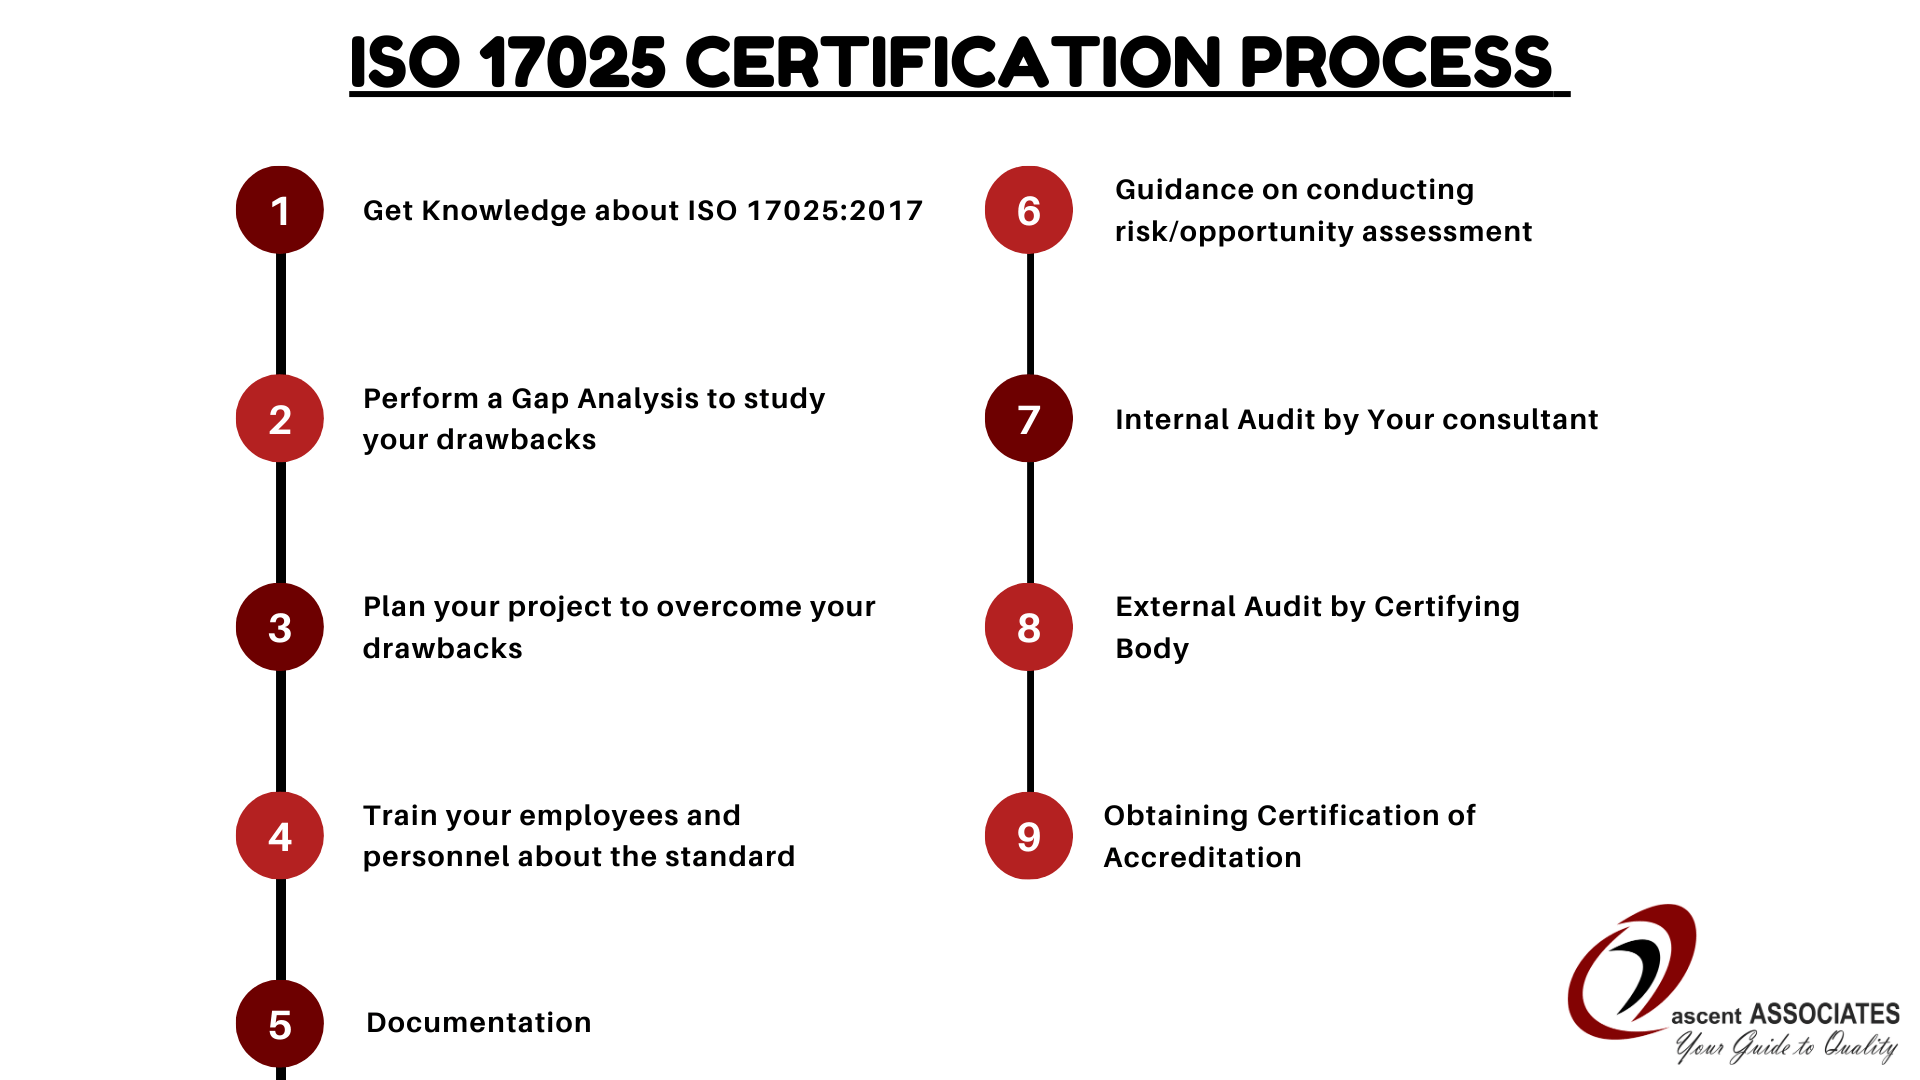 ISO 17025 Certification process